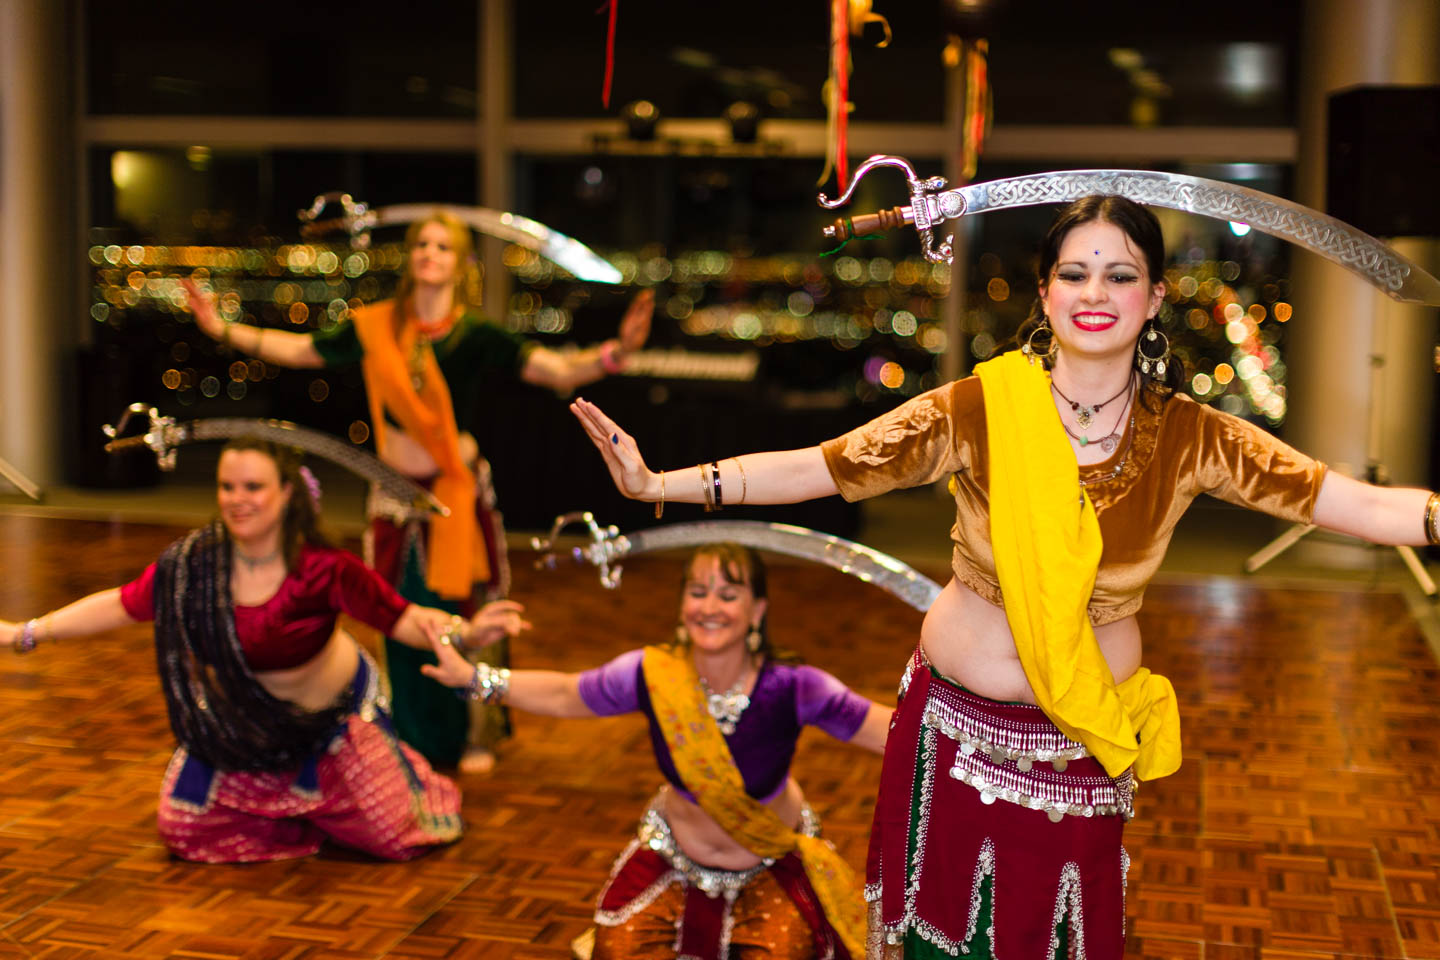 Belly dancers balance swords on their heads